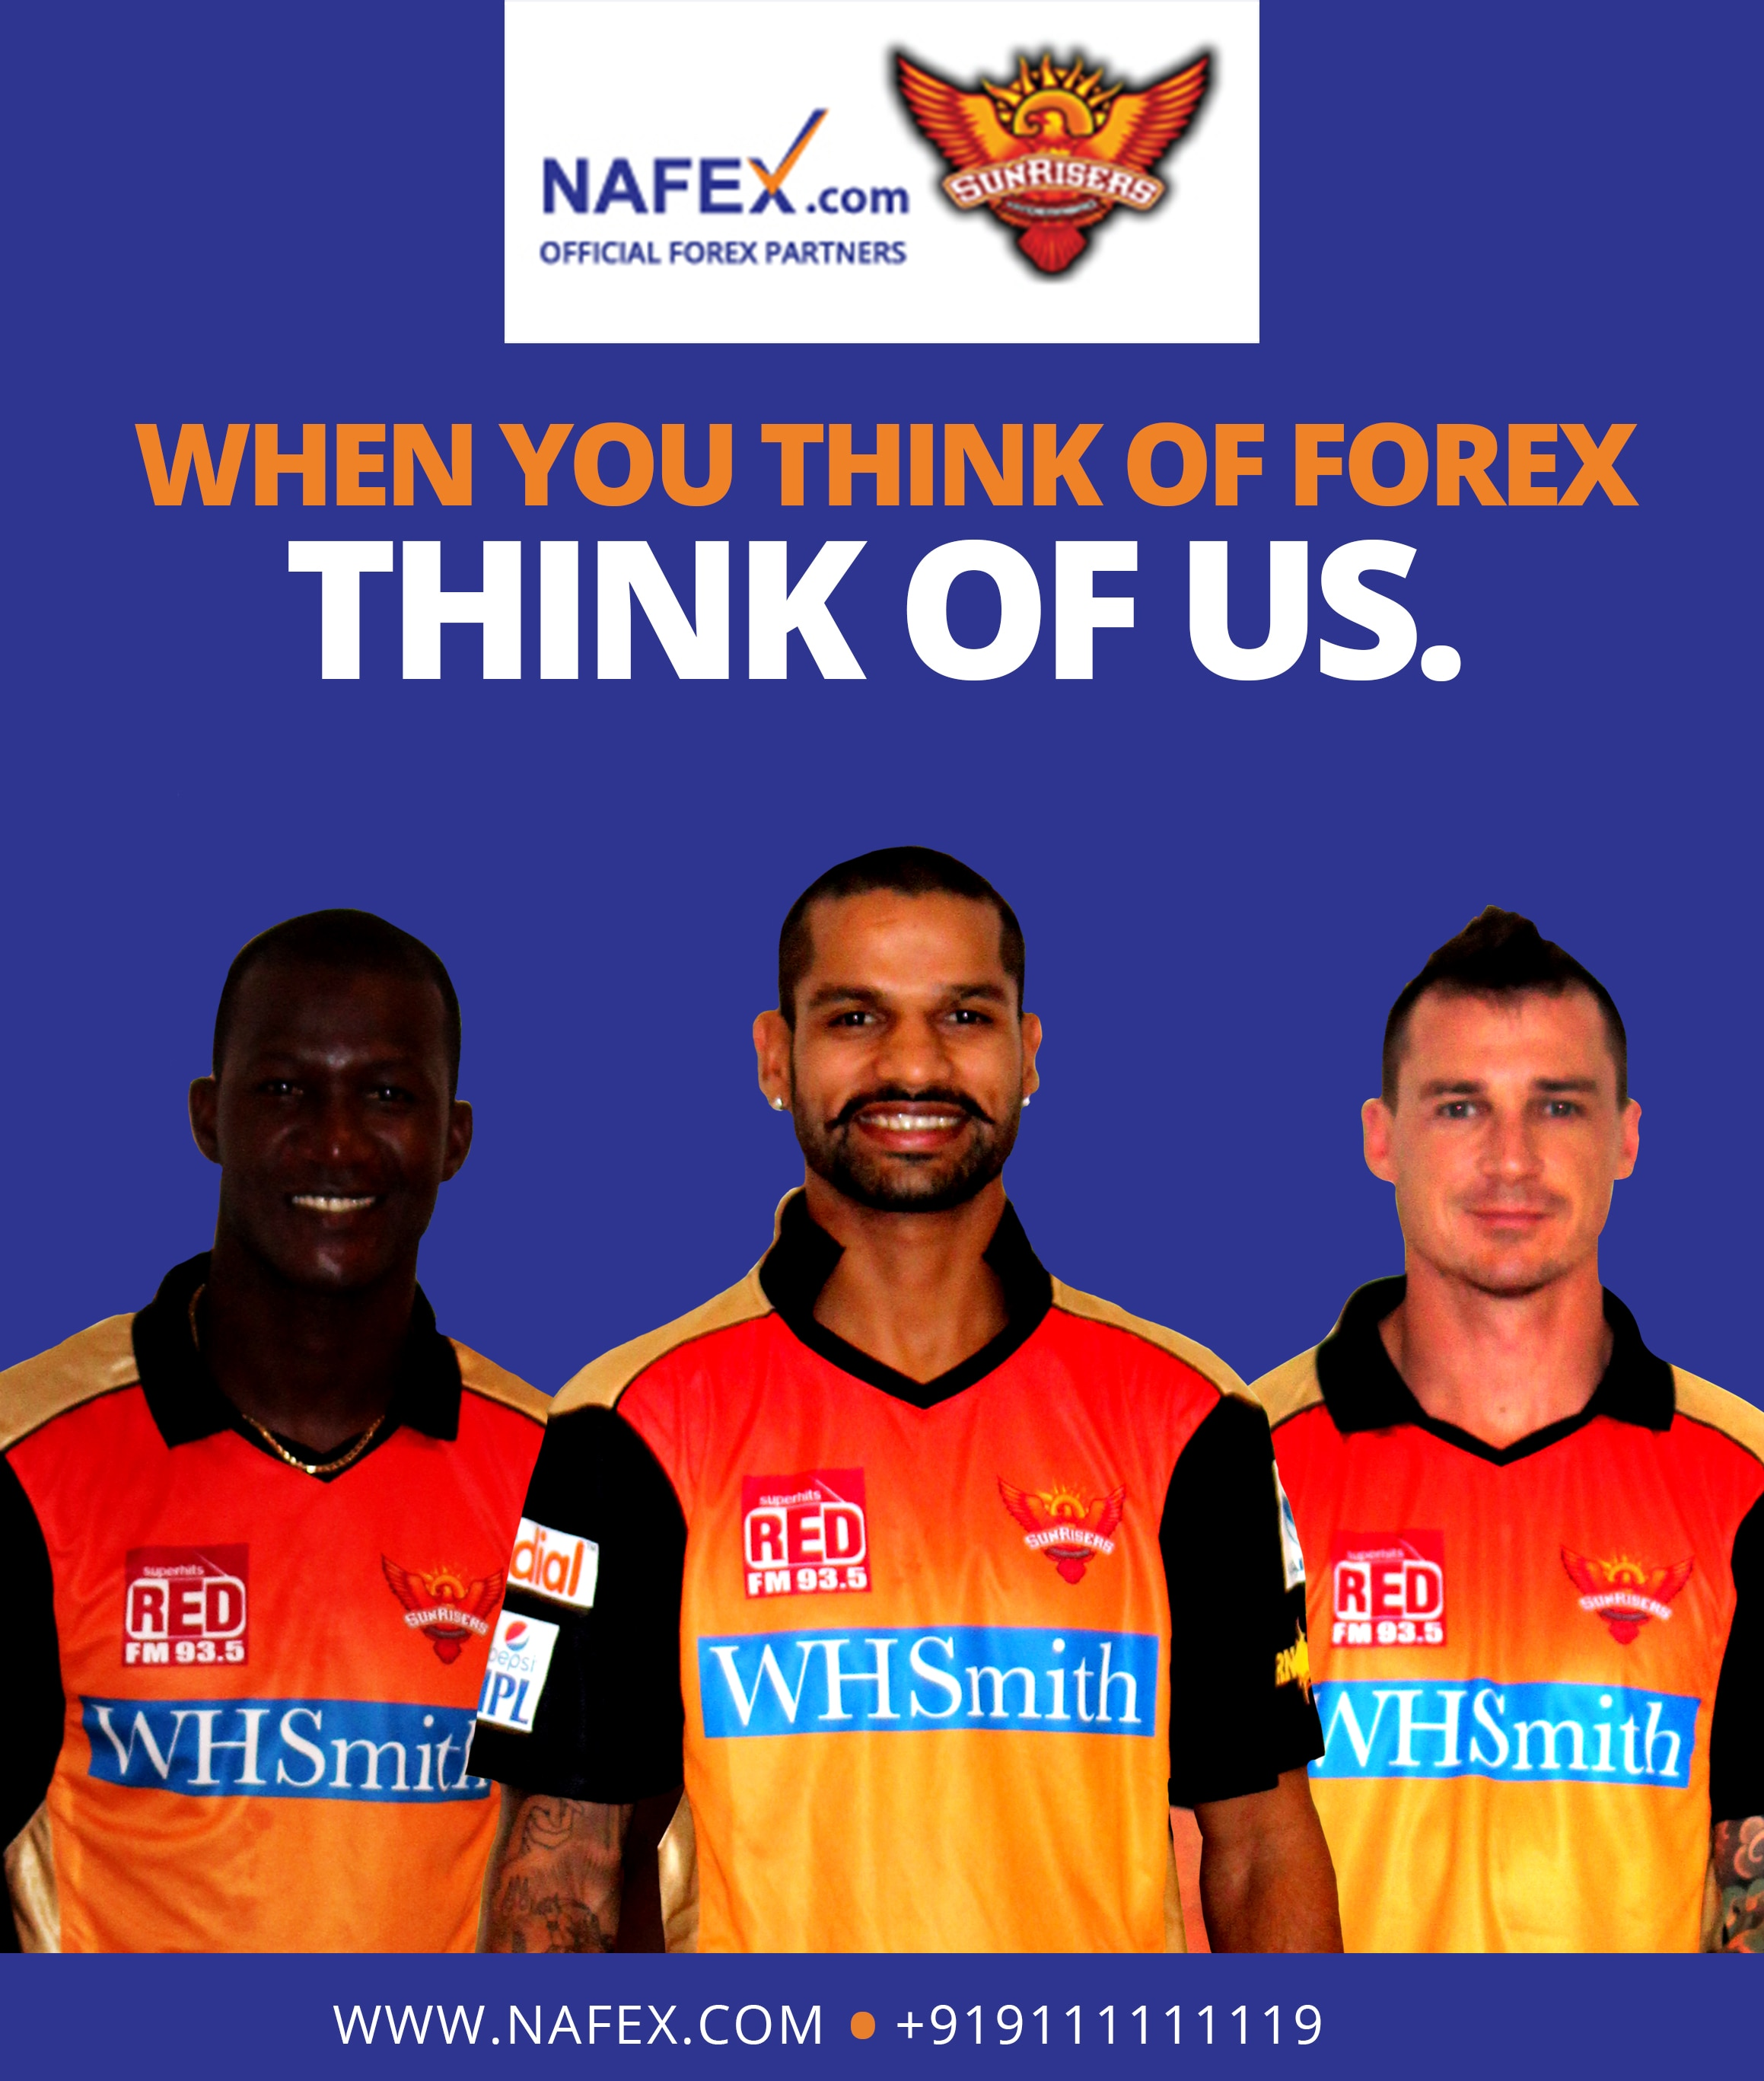 Nafex - Andheri Sports Complex Foreign Currency Exchange Dealers Agents Andheri Sports Complex , Online Travellers Cheque & Forex Prepaid Card